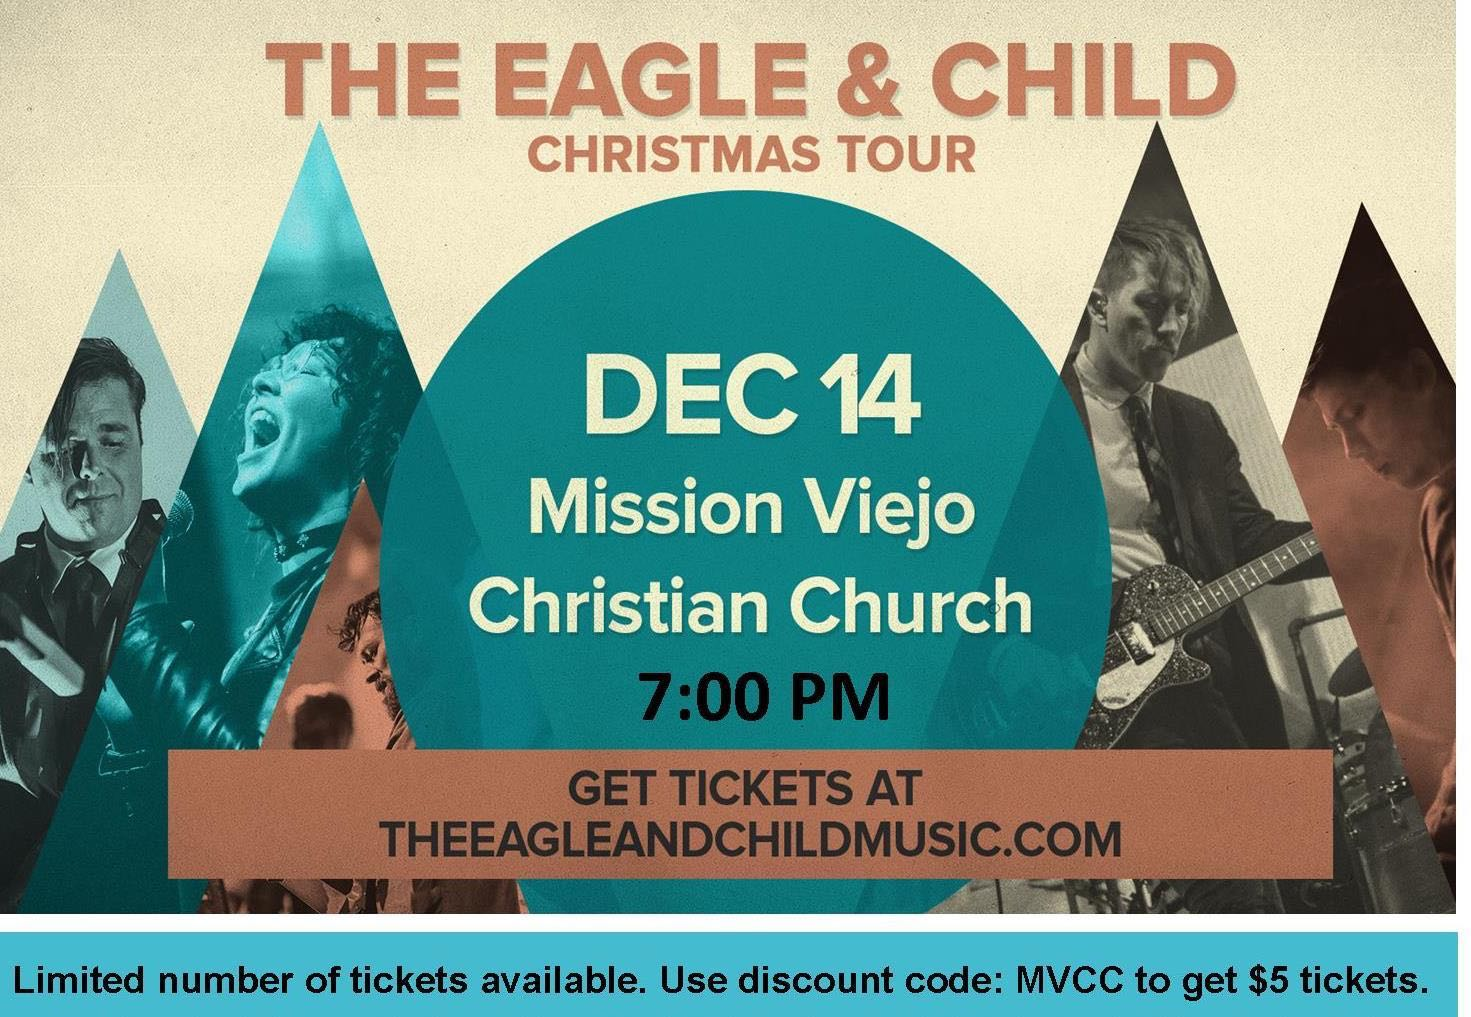 The Eagle and Child is a rock/worship band from San Diego, that has spent the recent years crafting a dynamic, and reverent Christmas Concert. Passionate about reflecting God's creativity through music and art, The Eagle And Child have crafted compelling, joyous, reflective arrangements of our favorite Christmas Songs. This event, using music and art, drums... a lot of drums... will focus on the most significant arrival since time began, the incarnation of The Son of God. Invite your friends, family, believers, and non-believers to celebrate this season together.